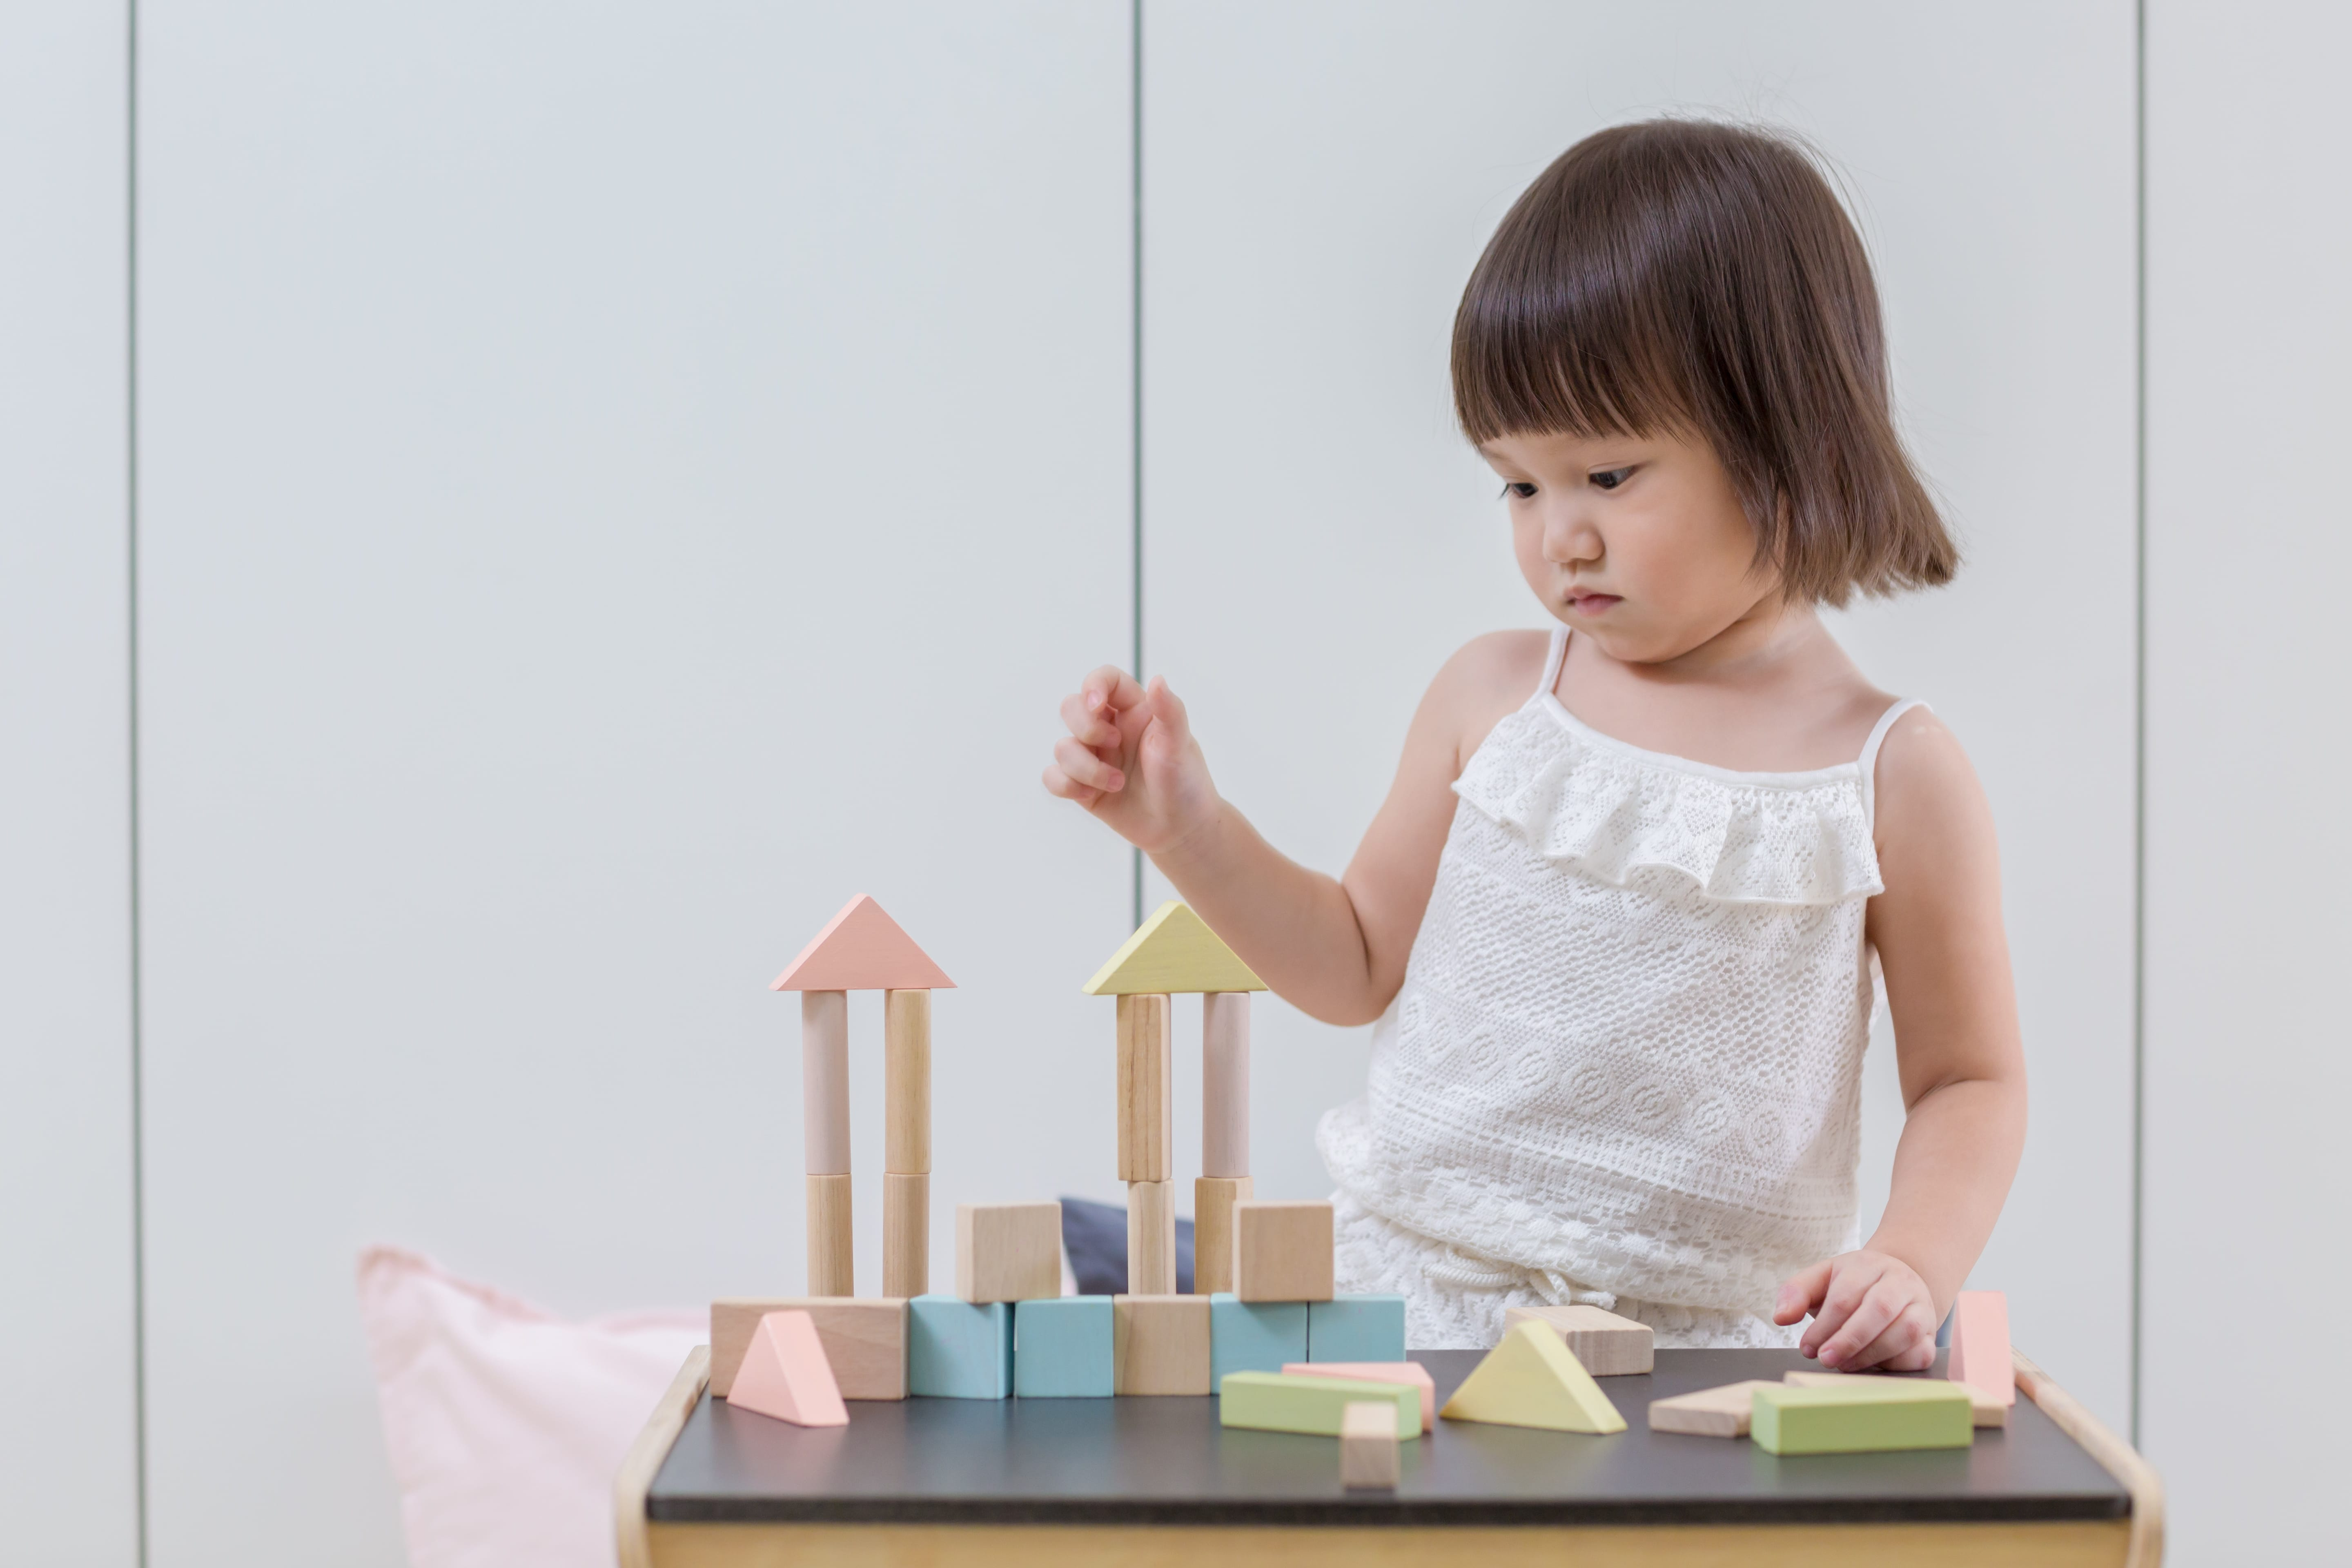 5507_PlanToys_40_UNIT_BLOCKS_Blocks_and_Construction_Creative_Coordination_Language_and_Communications_Social_Fine_Motor_2yrs_Wooden_toys_Education_toys_Safety_Toys_Non-toxic_4.jpg